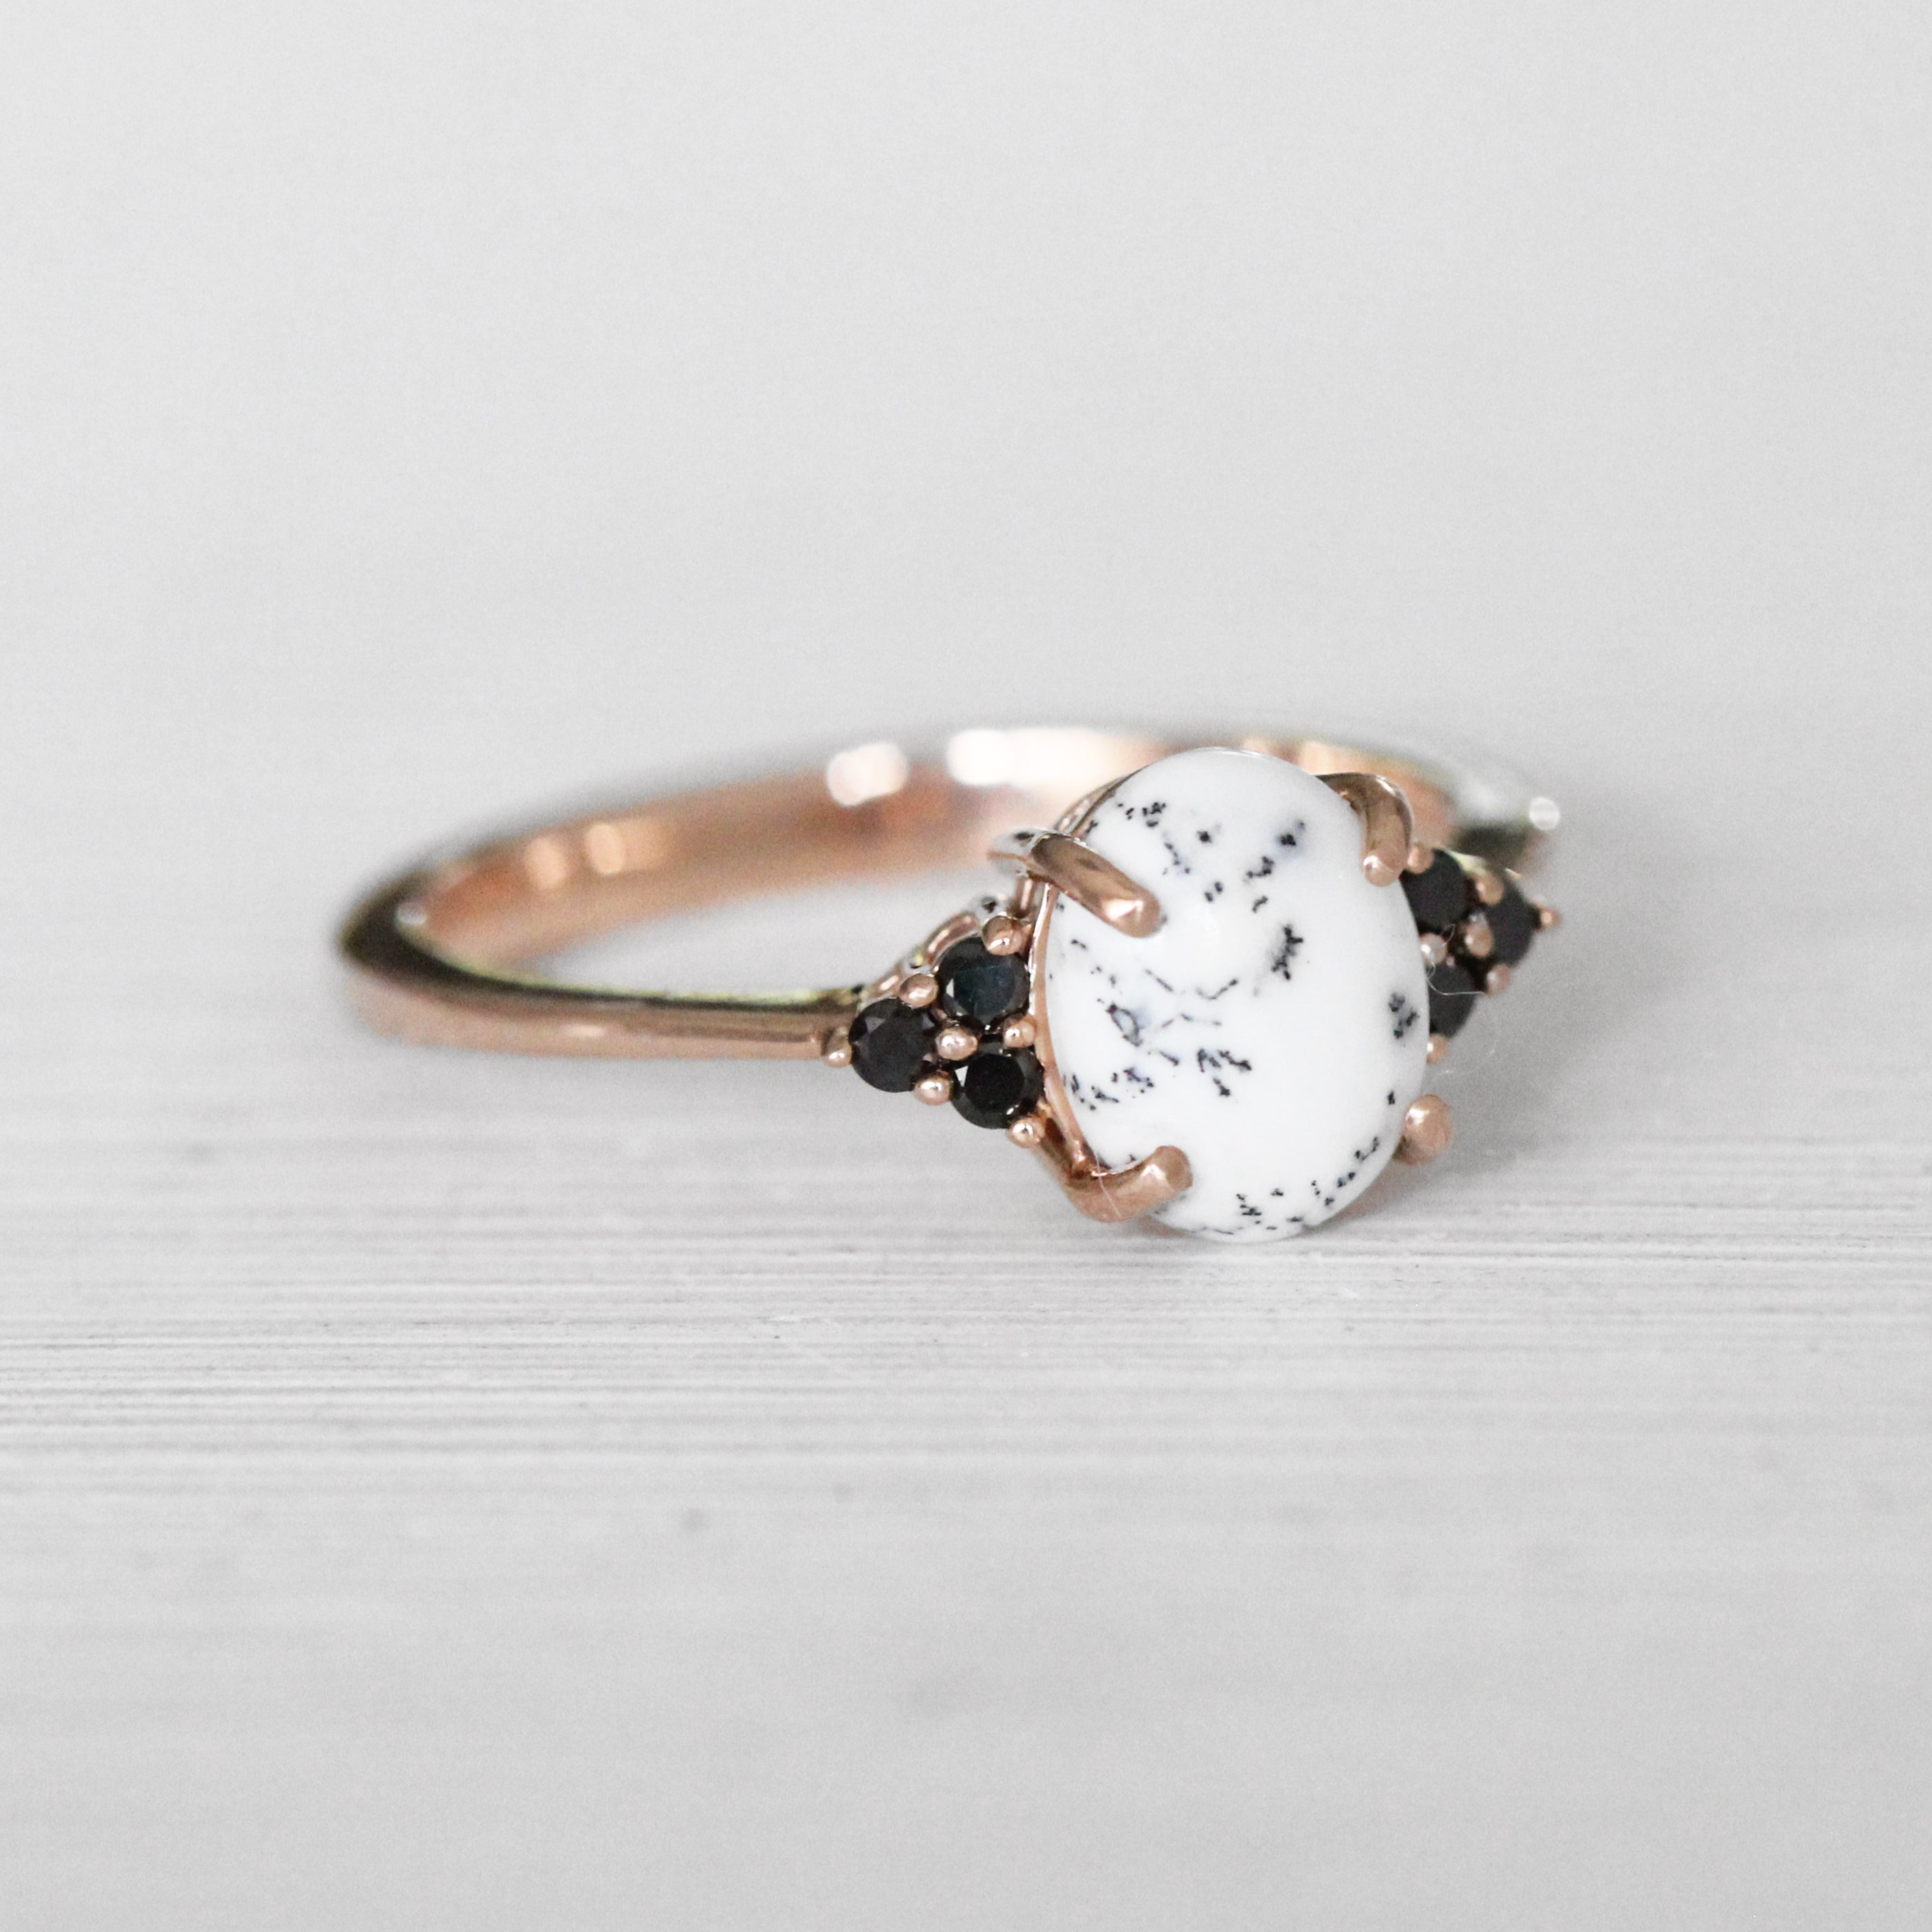 Imogene Ring with a Dendritic Opal and Black Diamonds in 14k Rose Gold - Ready to Size and Ship - Celestial Diamonds ® by Midwinter Co.